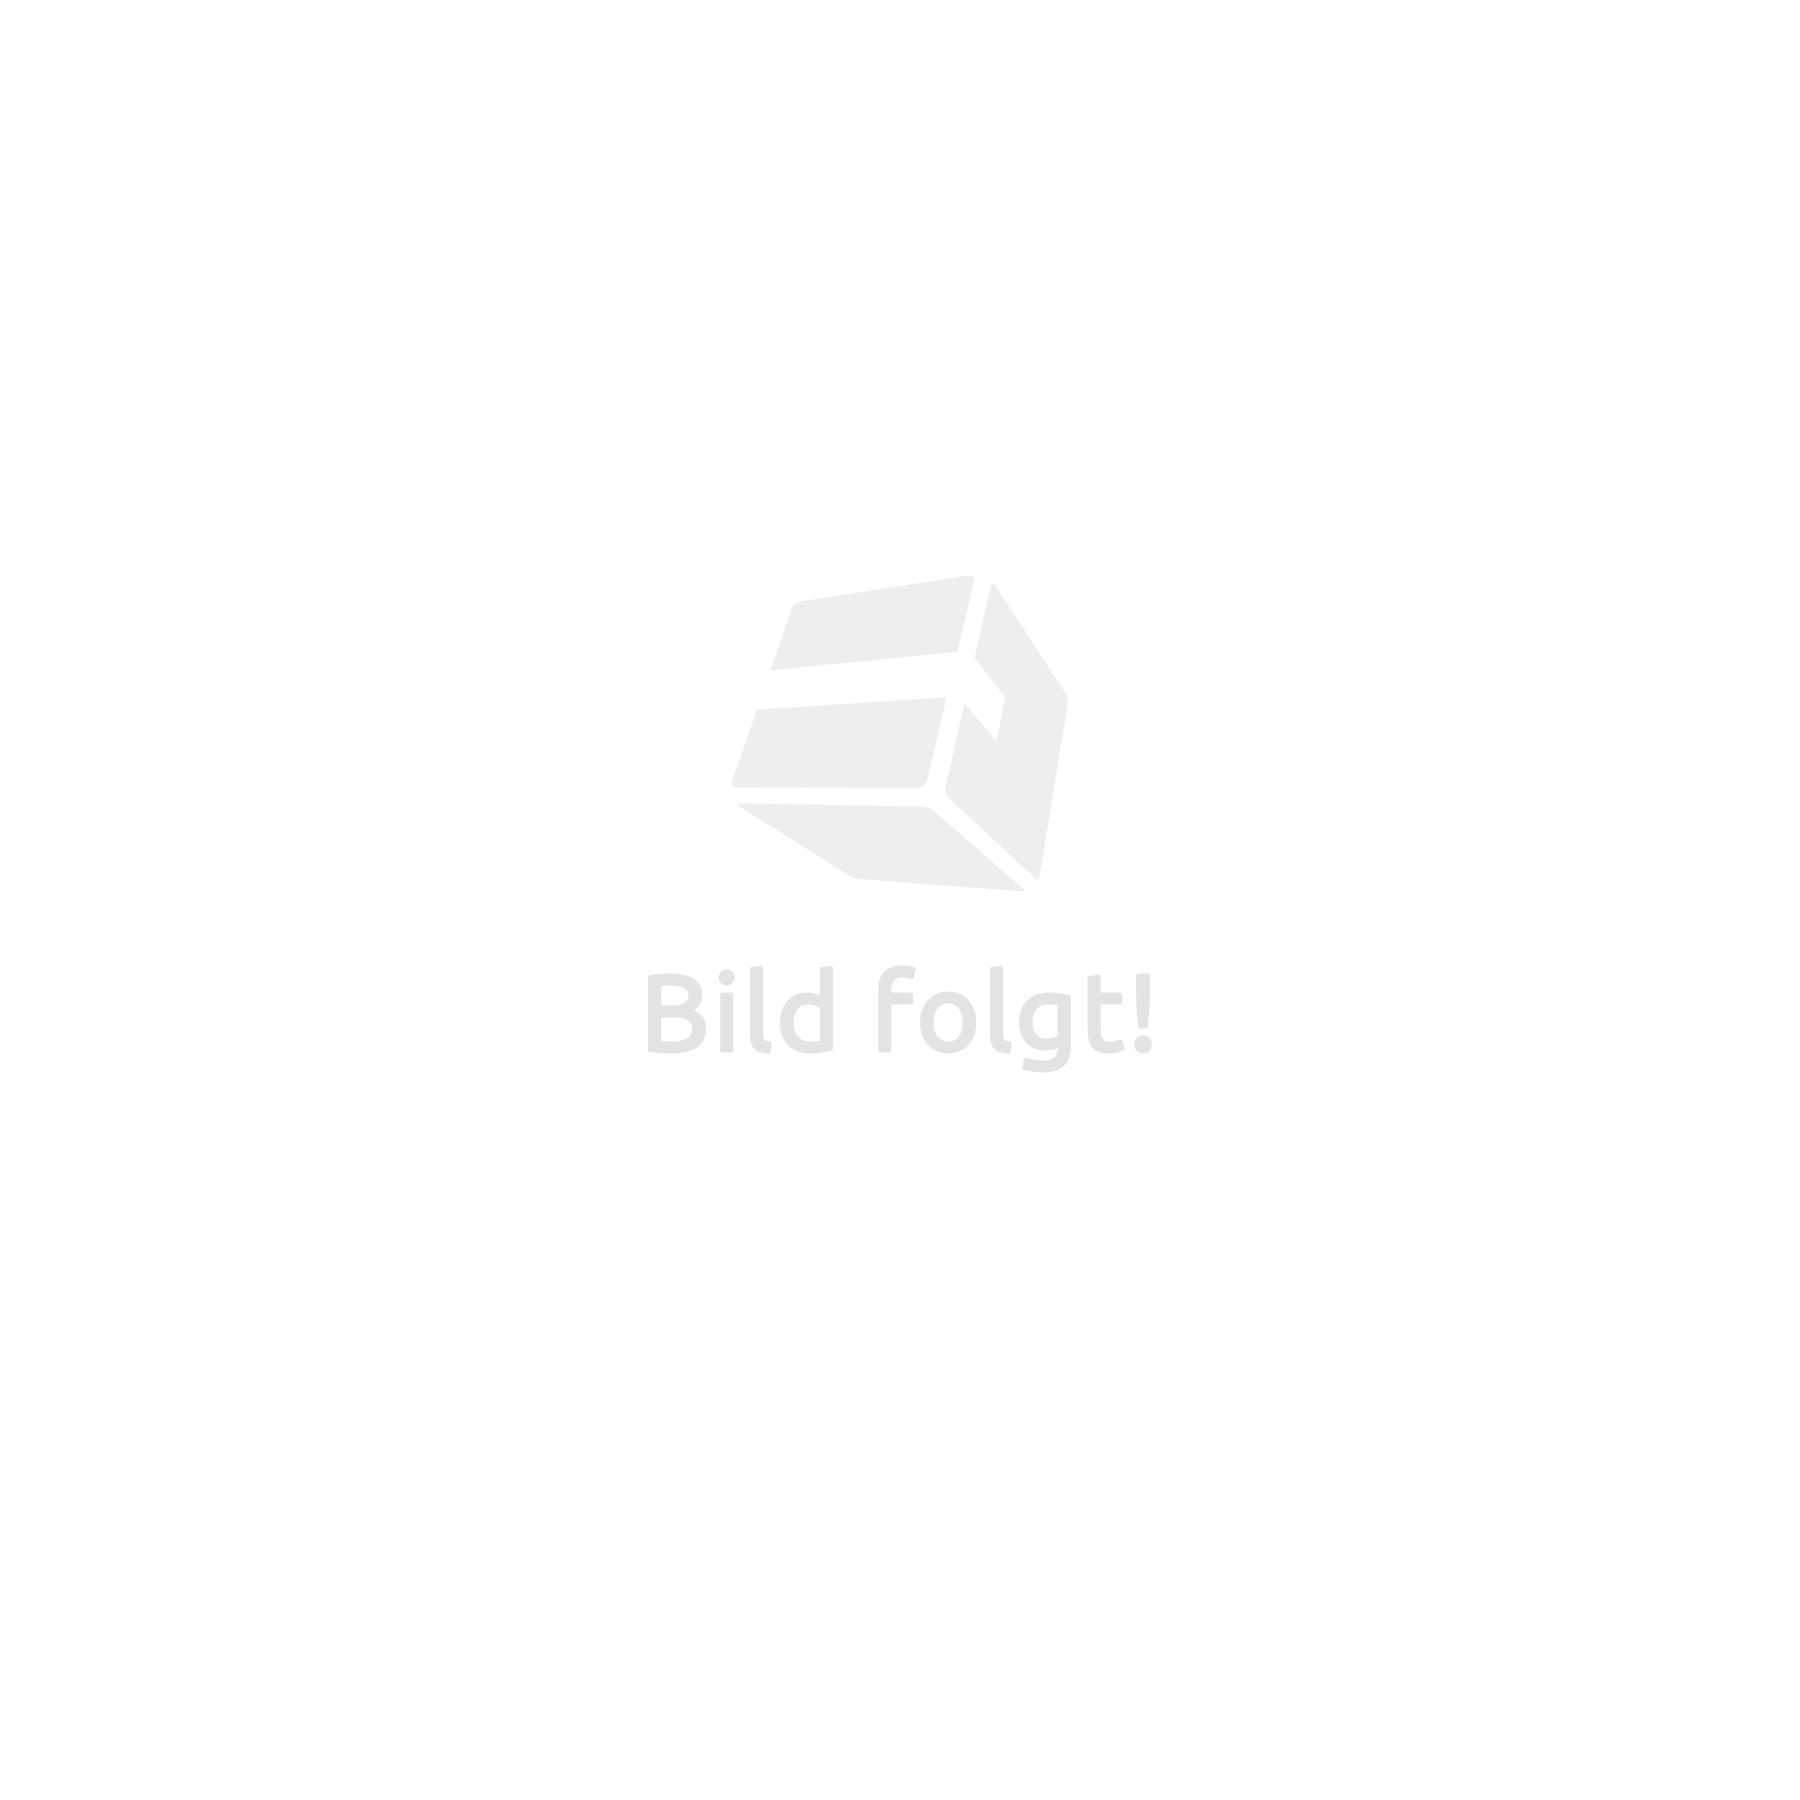 TV wall mount for 32-55 inch (81-140cm) can be tilted and swivelled spirit level